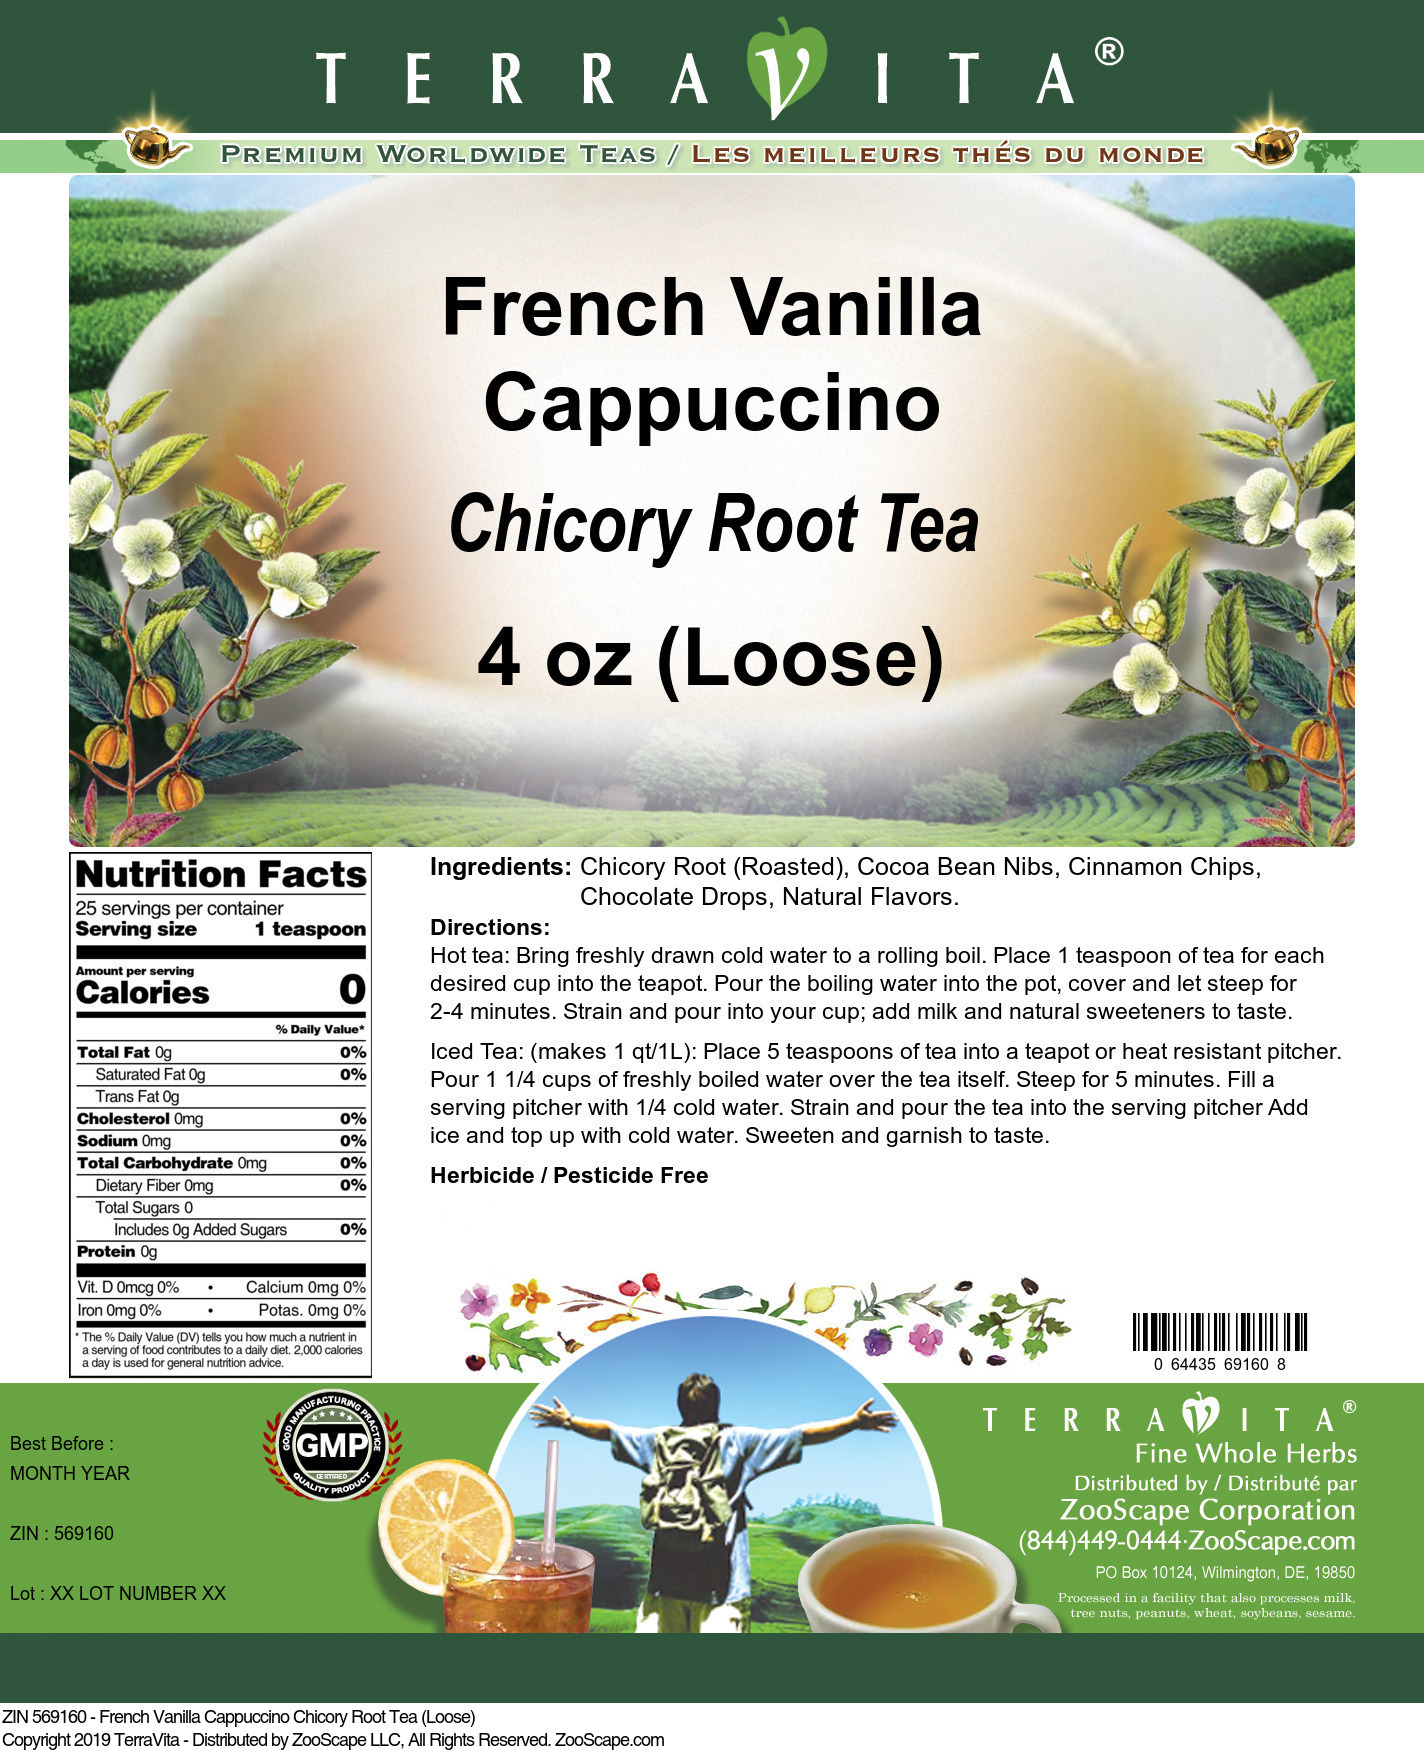 French Vanilla Cappuccino Chicory Root Tea (Loose)